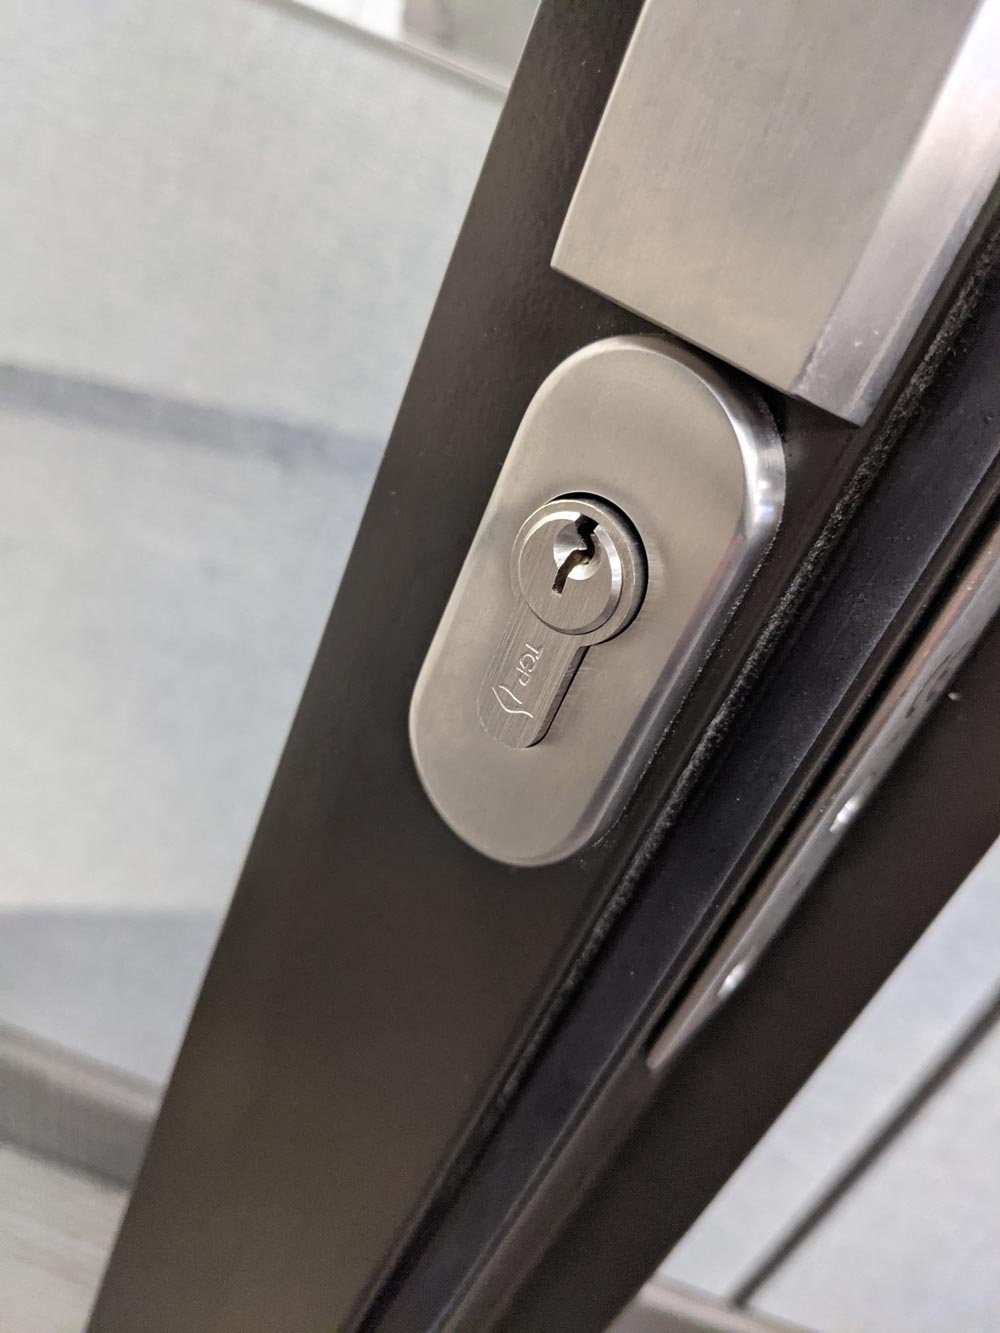 a-1-locksmith-and-security-center-rekeying-services-image